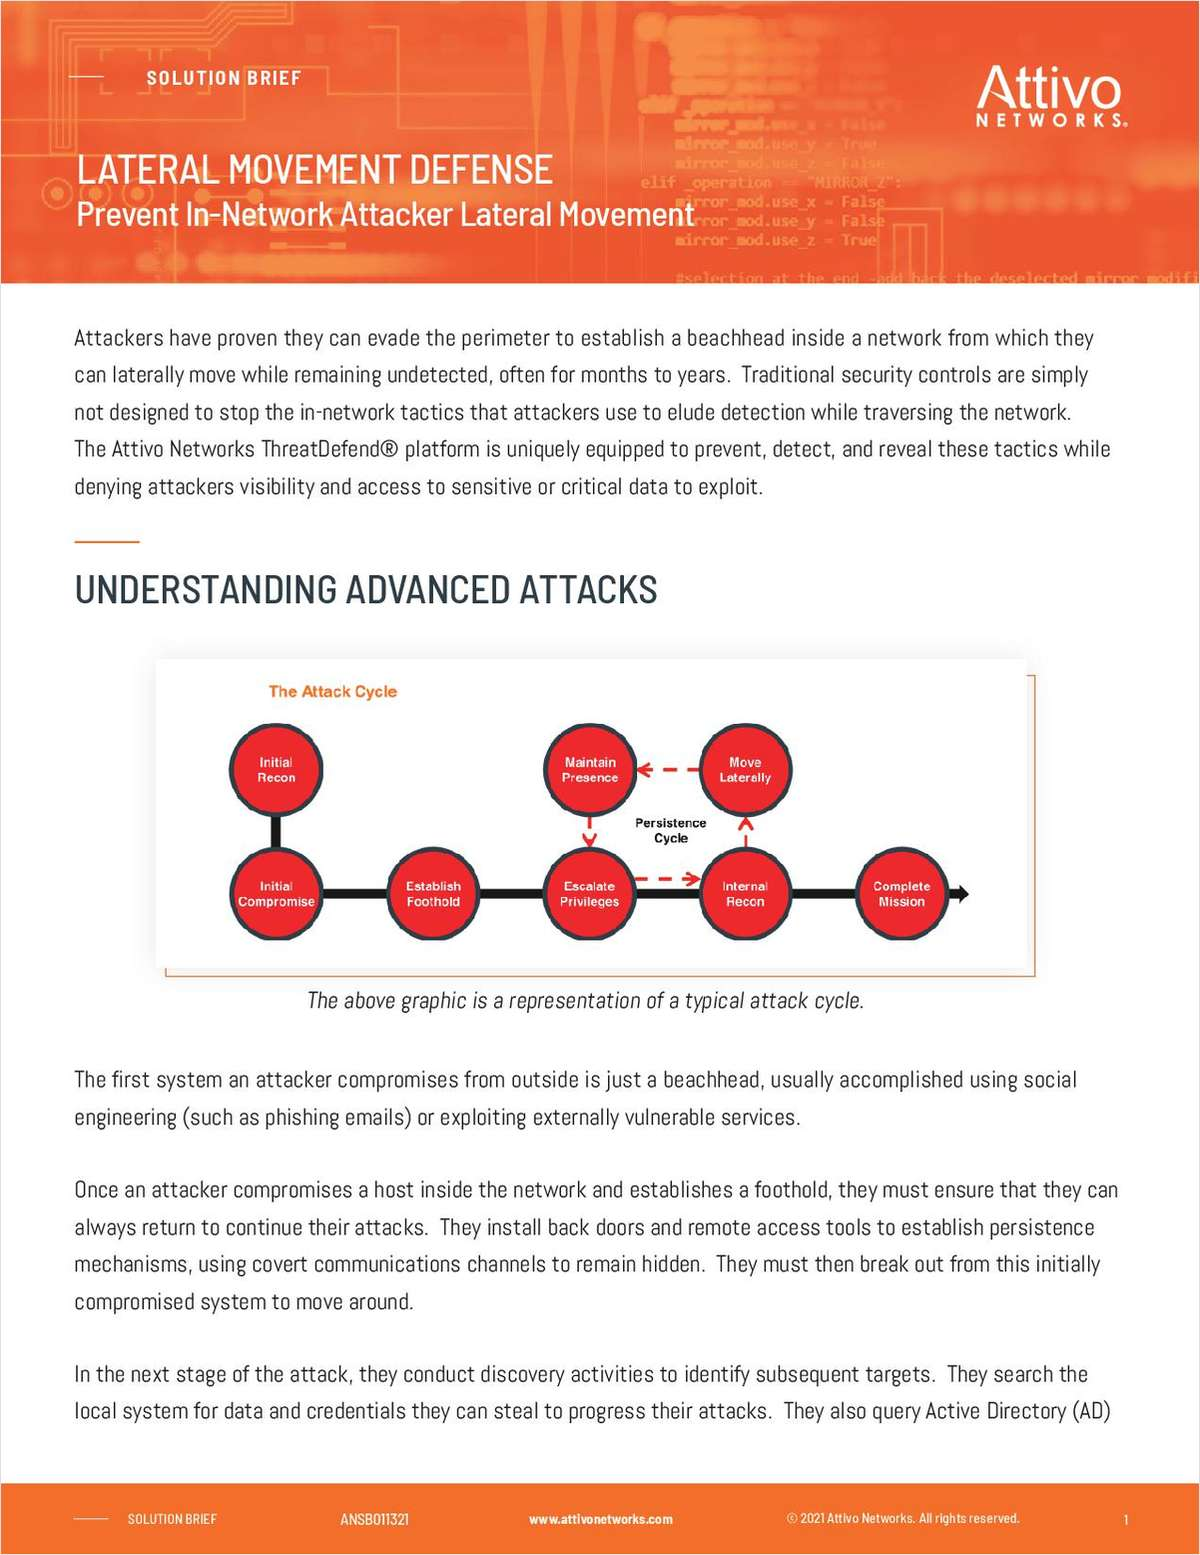 Prevent and Detect In-Network Attacker Lateral Movement